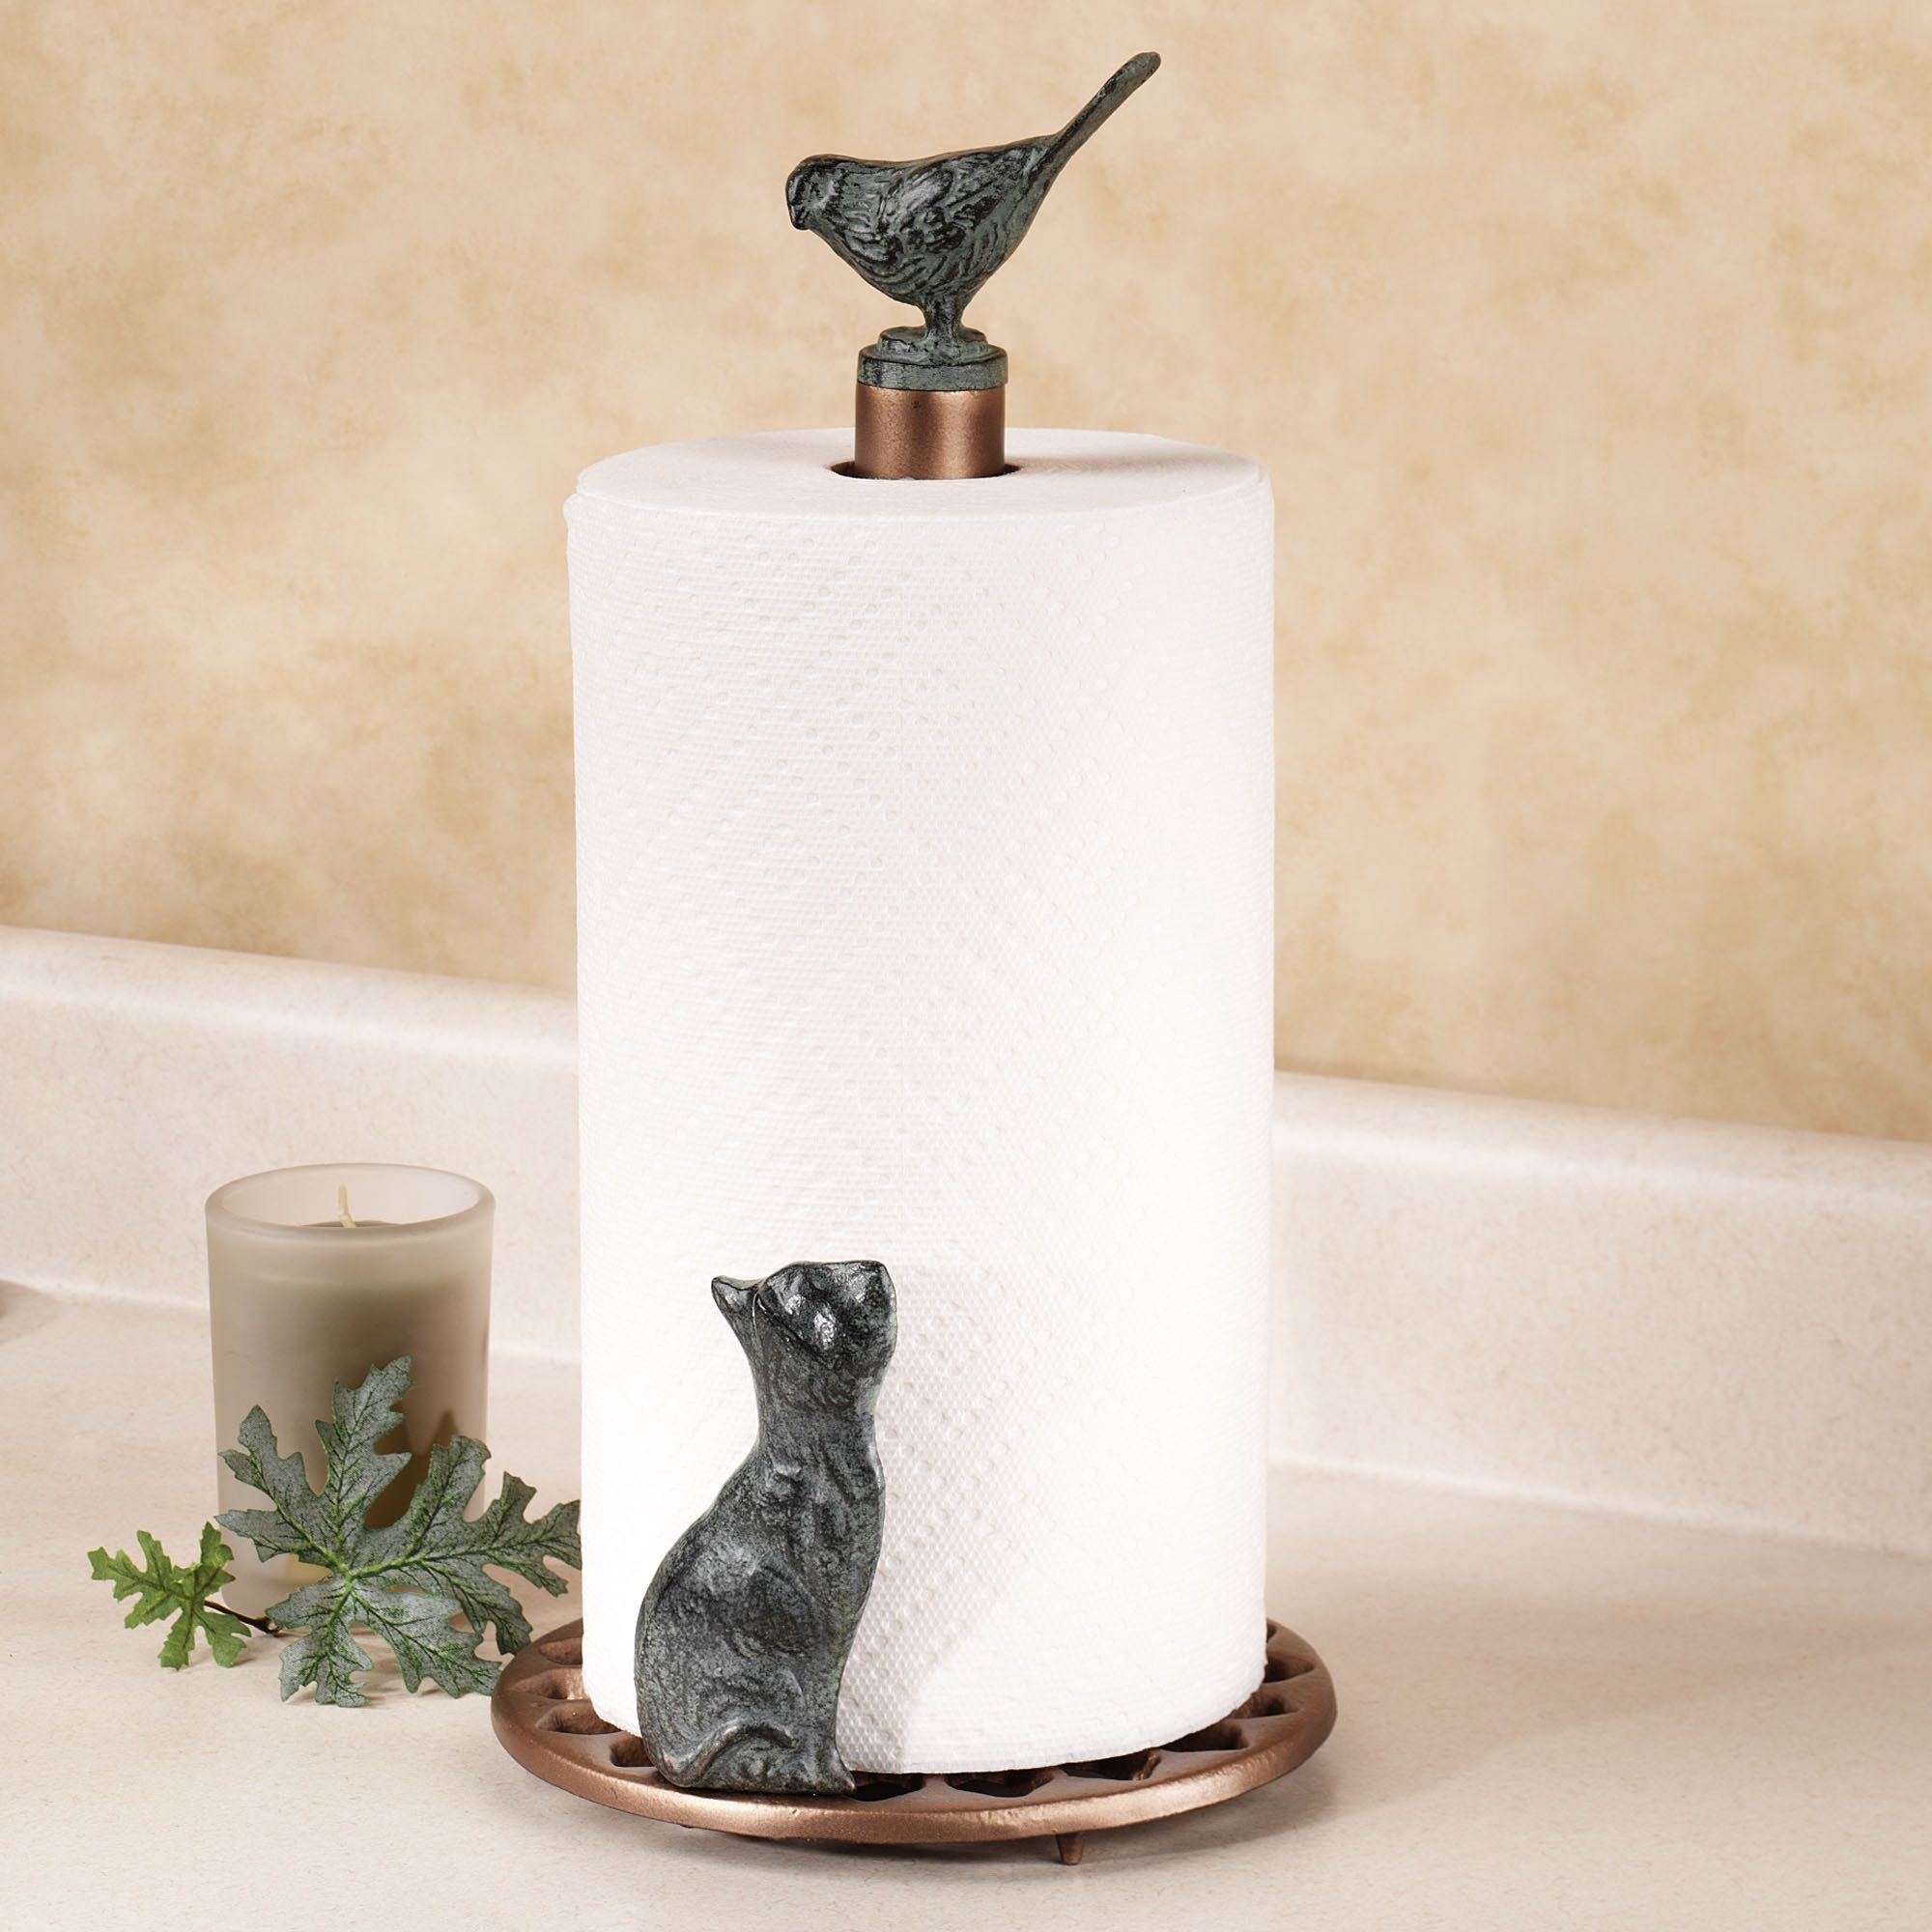 kitchen paper towel holder polished brass faucet cat and bird metal projects to try